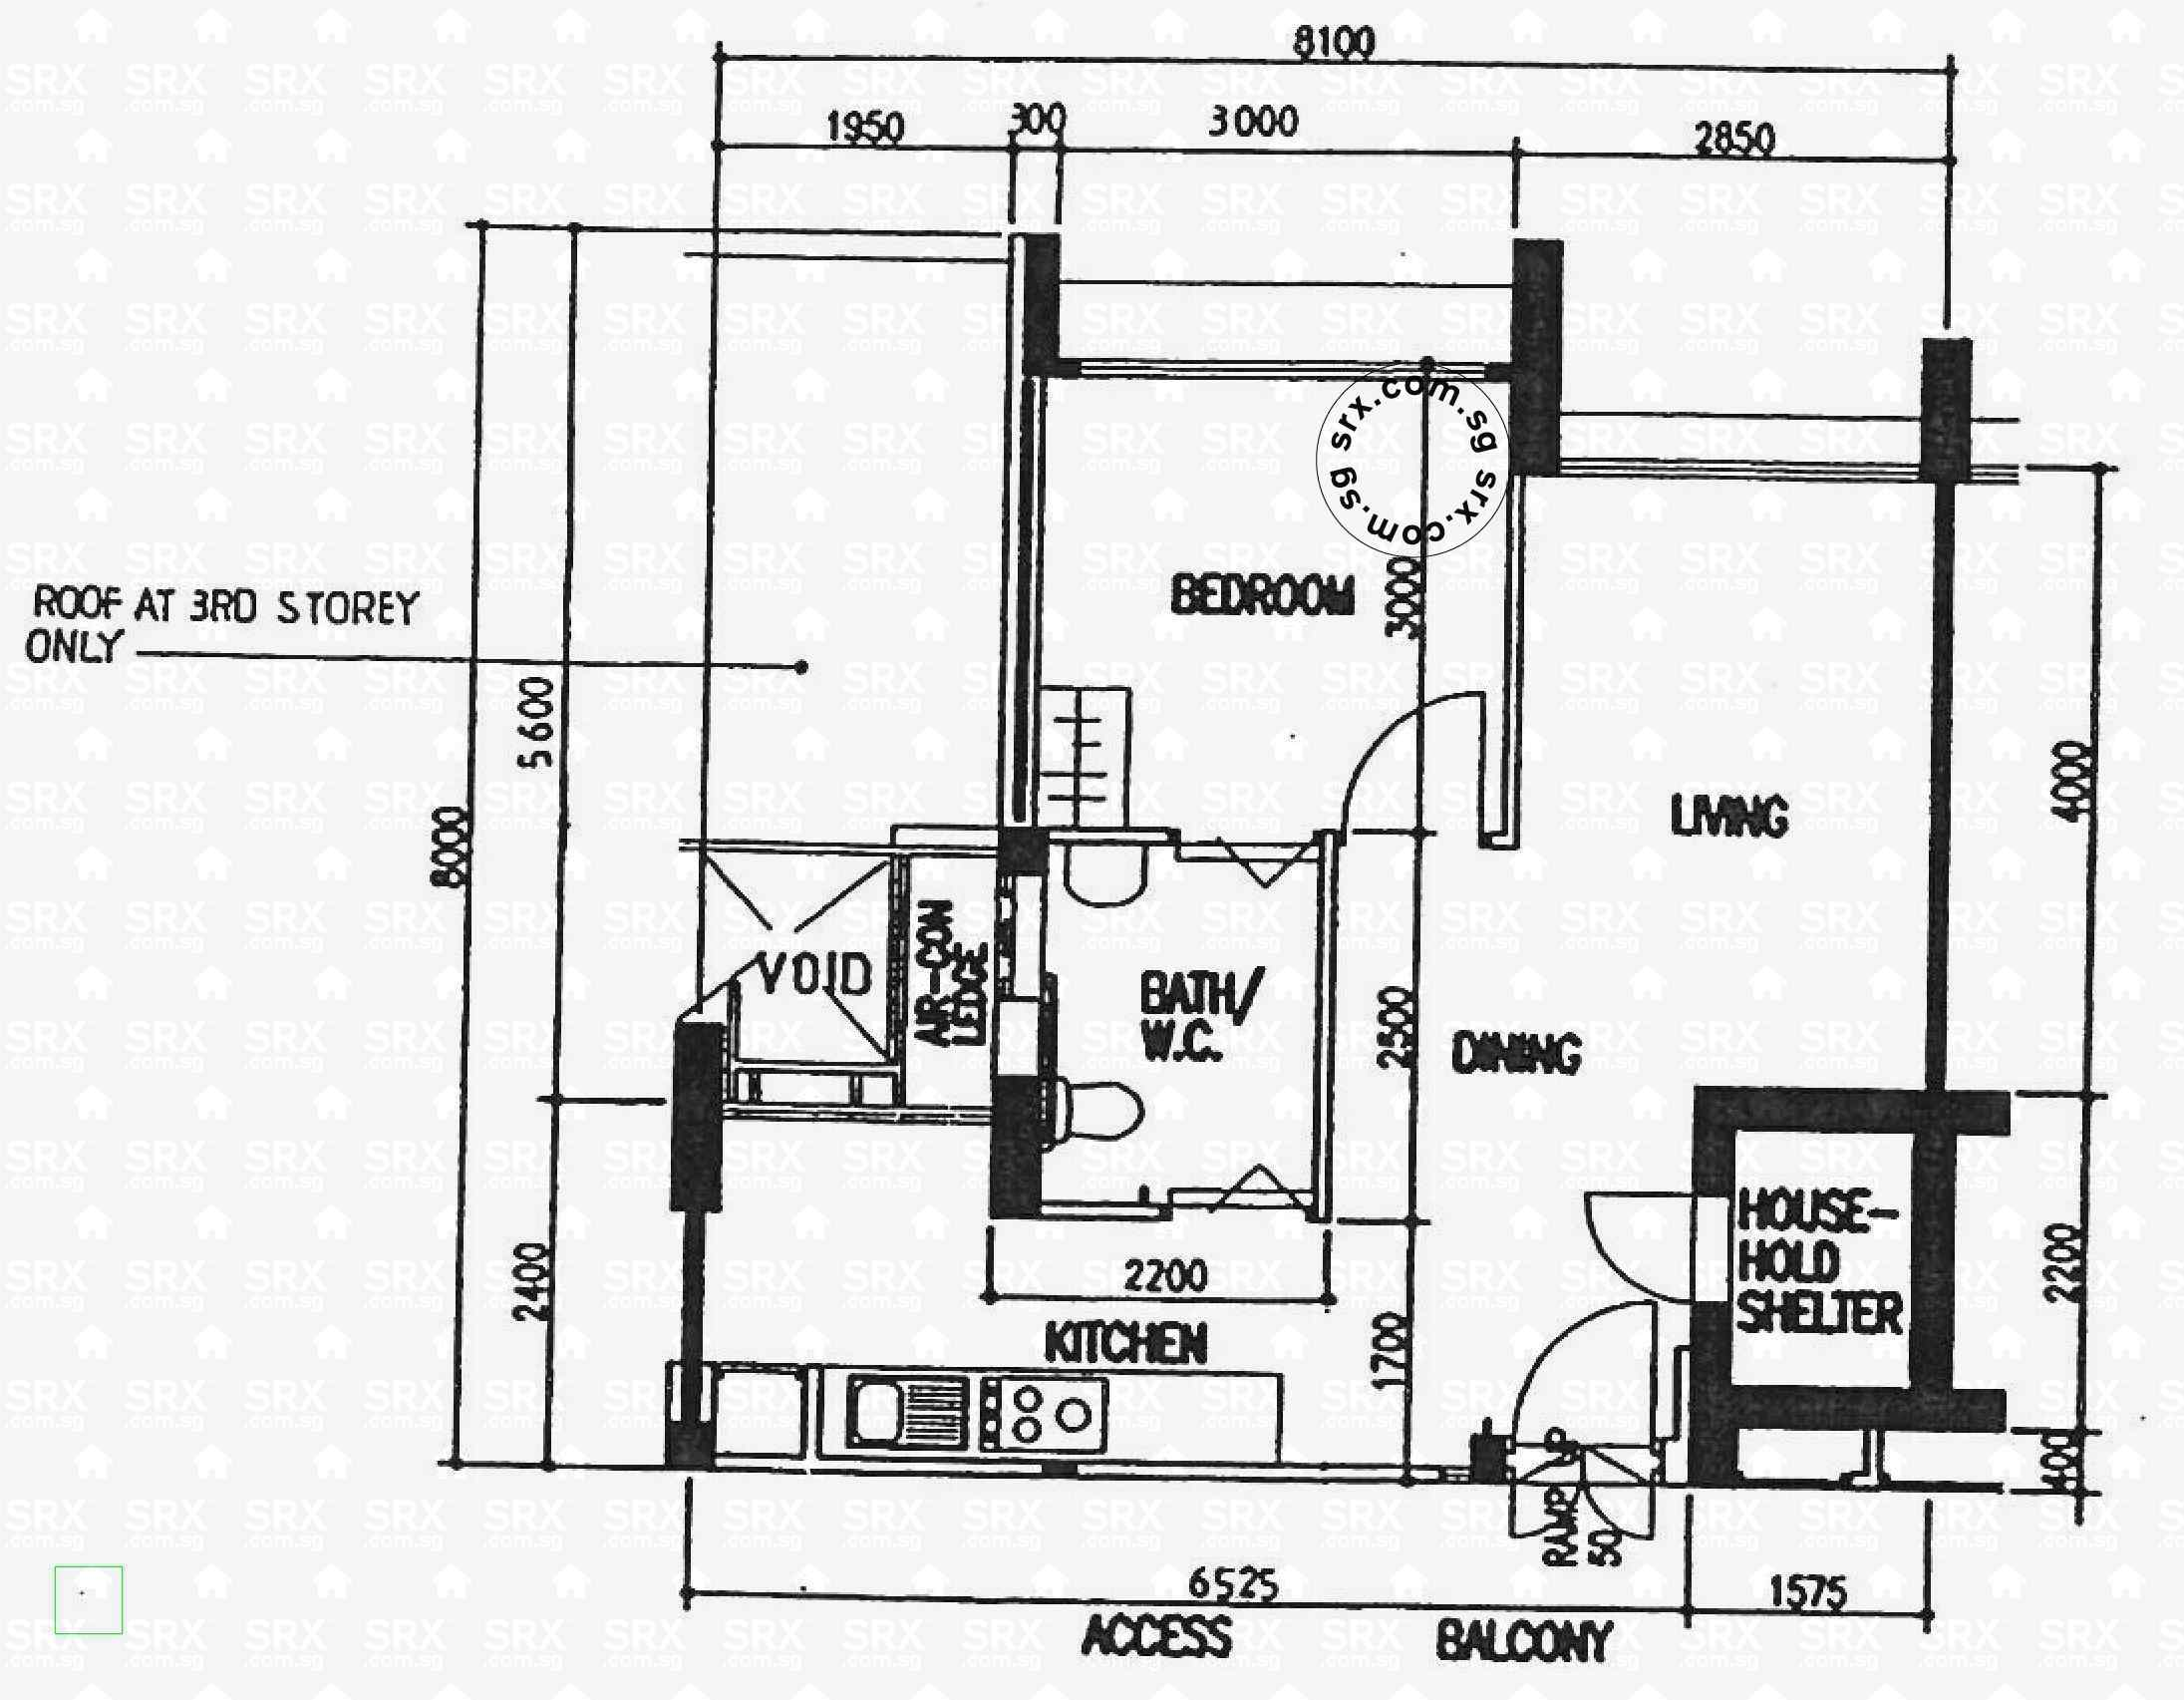 Bedok North Street 3 Floor Plan Image #1